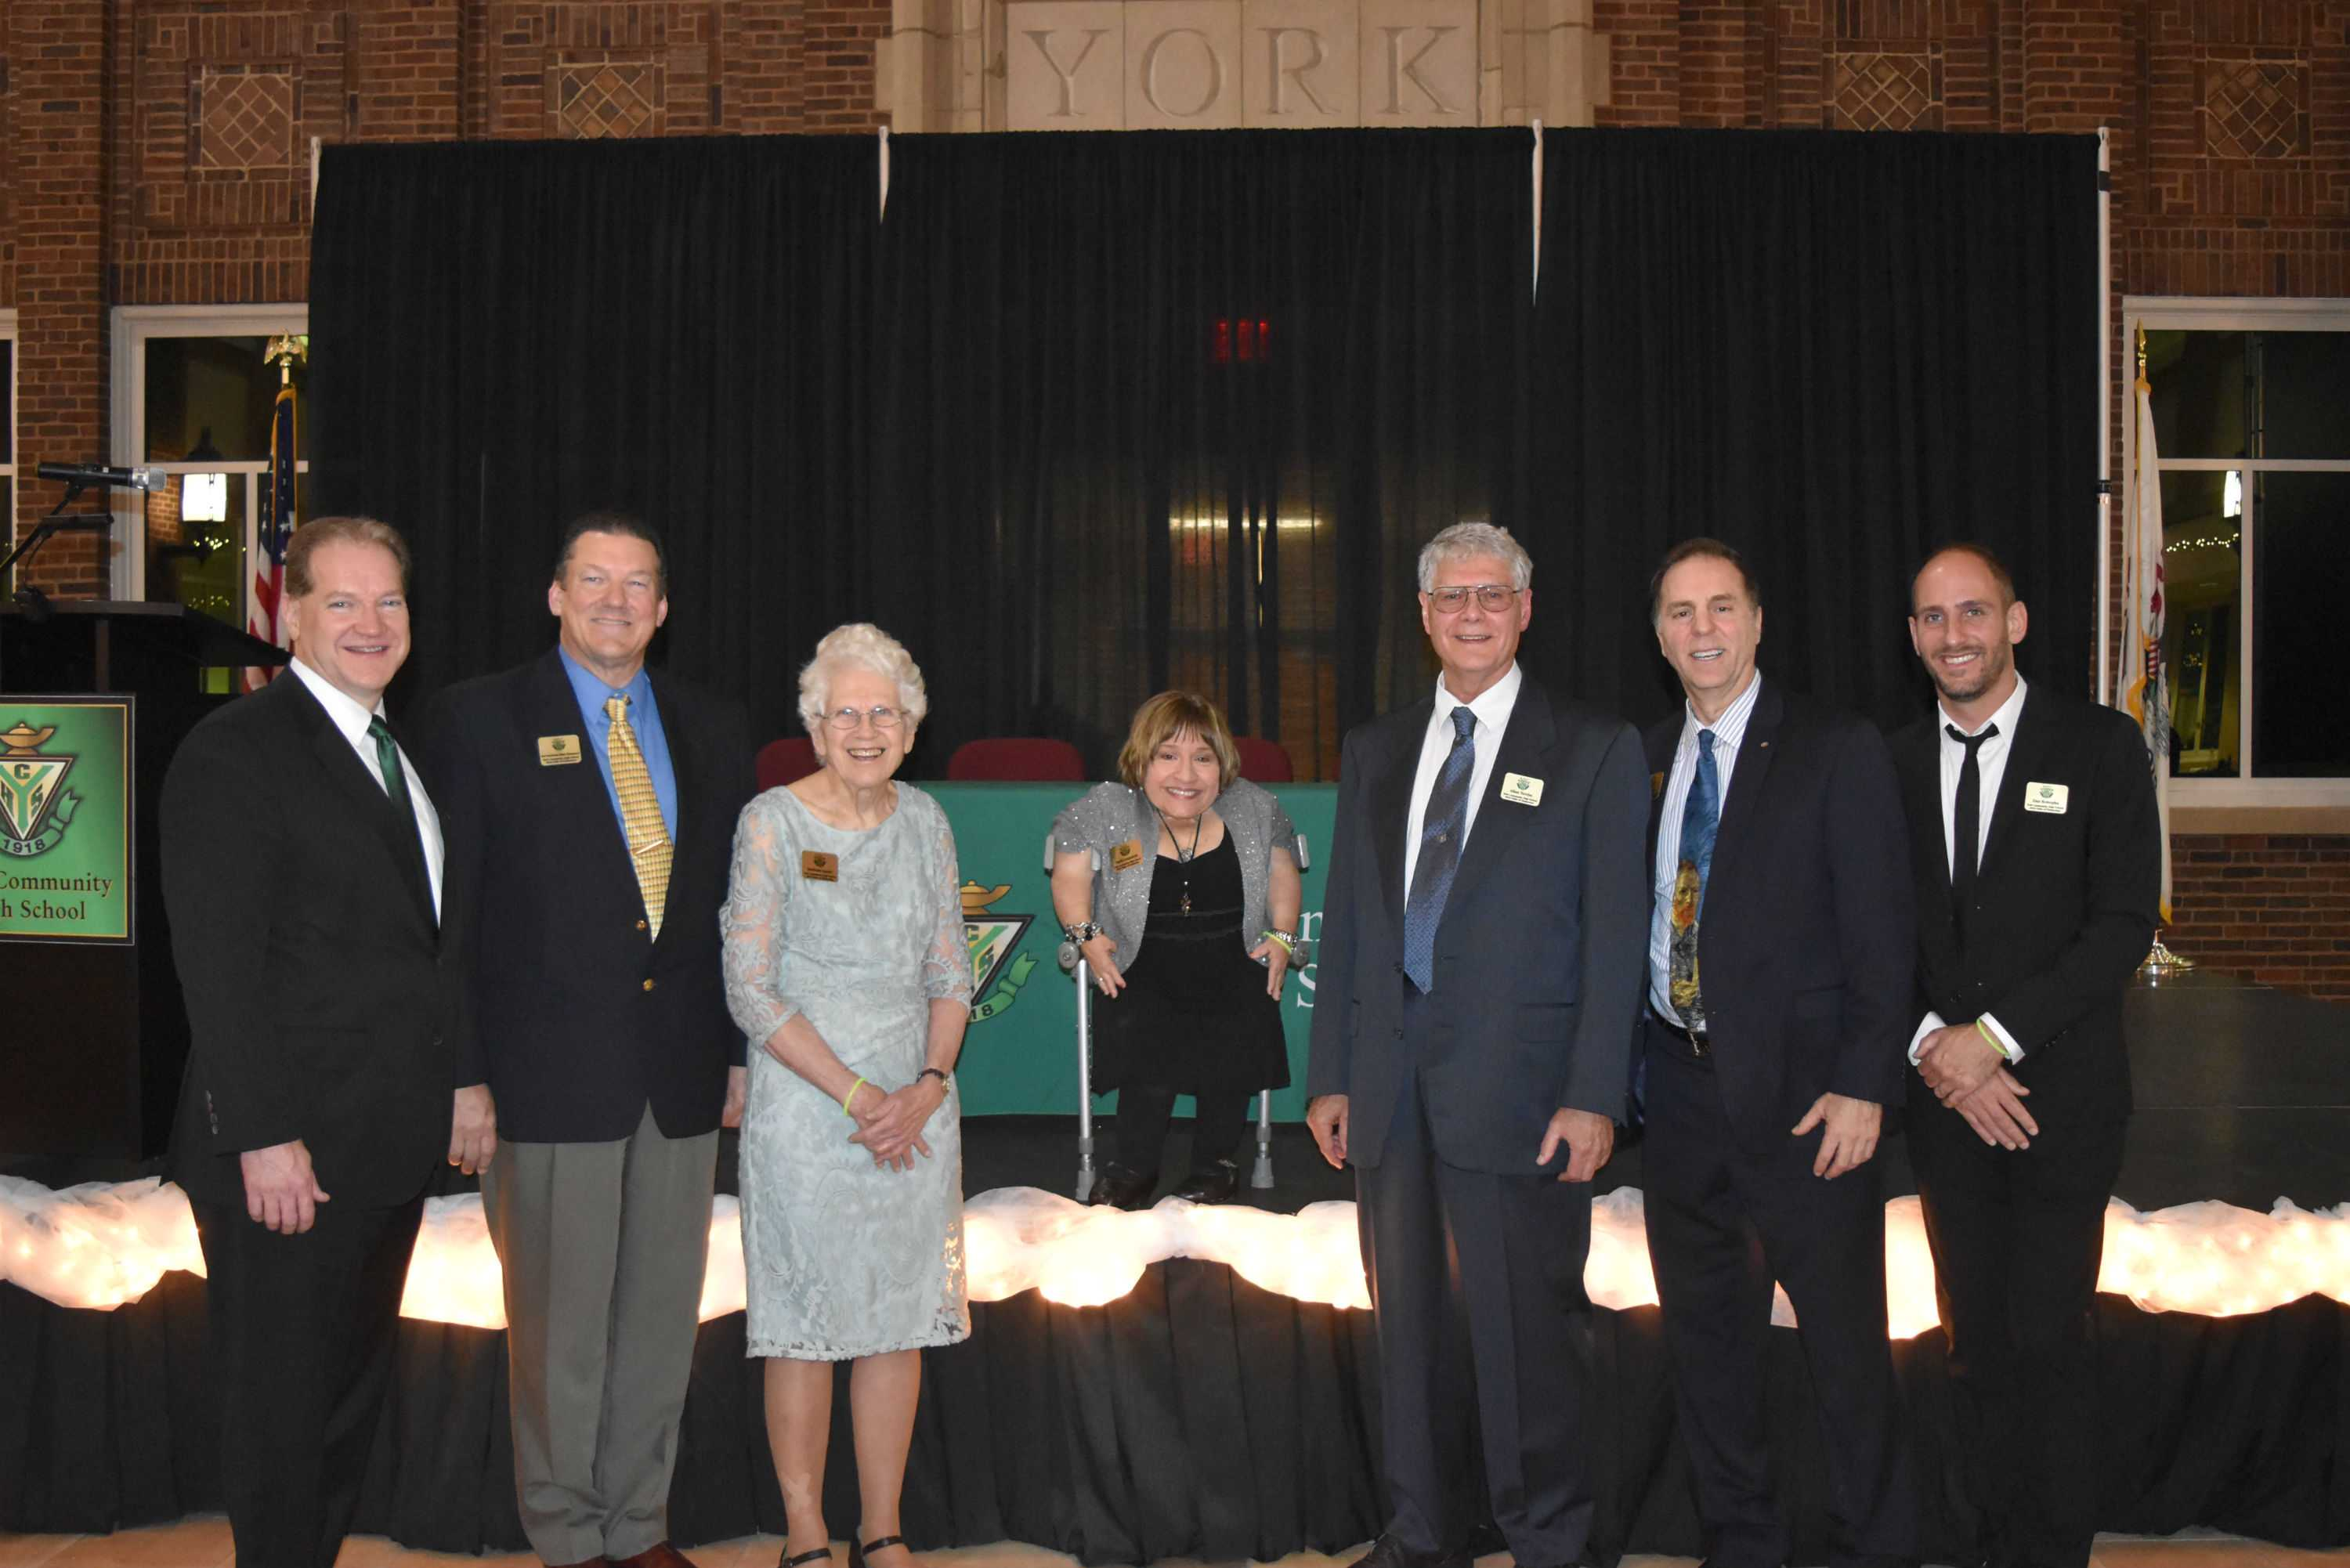 2016 Dukes of Distinction gather in the York Commons Thursday evening for induction ceremony. (Left to Right) Jack Lavin, Mark Nottelmann (son of O. Robert Nottelmann) Barbara Kegerreis Lunde, Tekki Lomnicki,  Dr. Allan Tereba,  Judd Lofchie. and Dan Konopka. Thurs., Nov. 3, 2016.